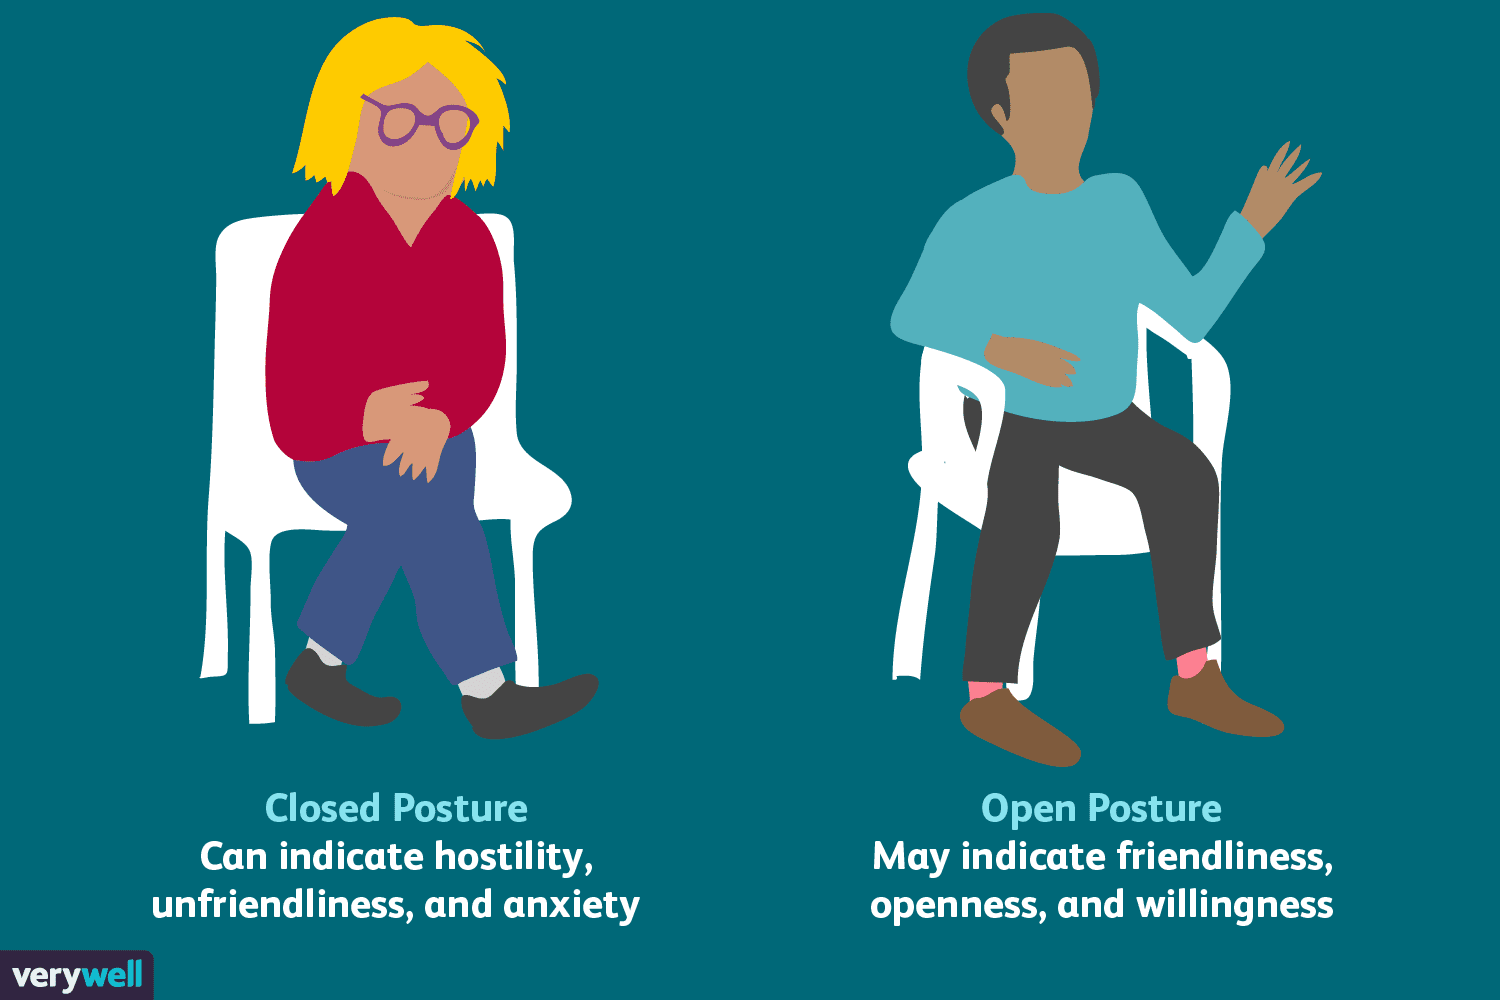 How To Understand Body Language And Facial Expressions